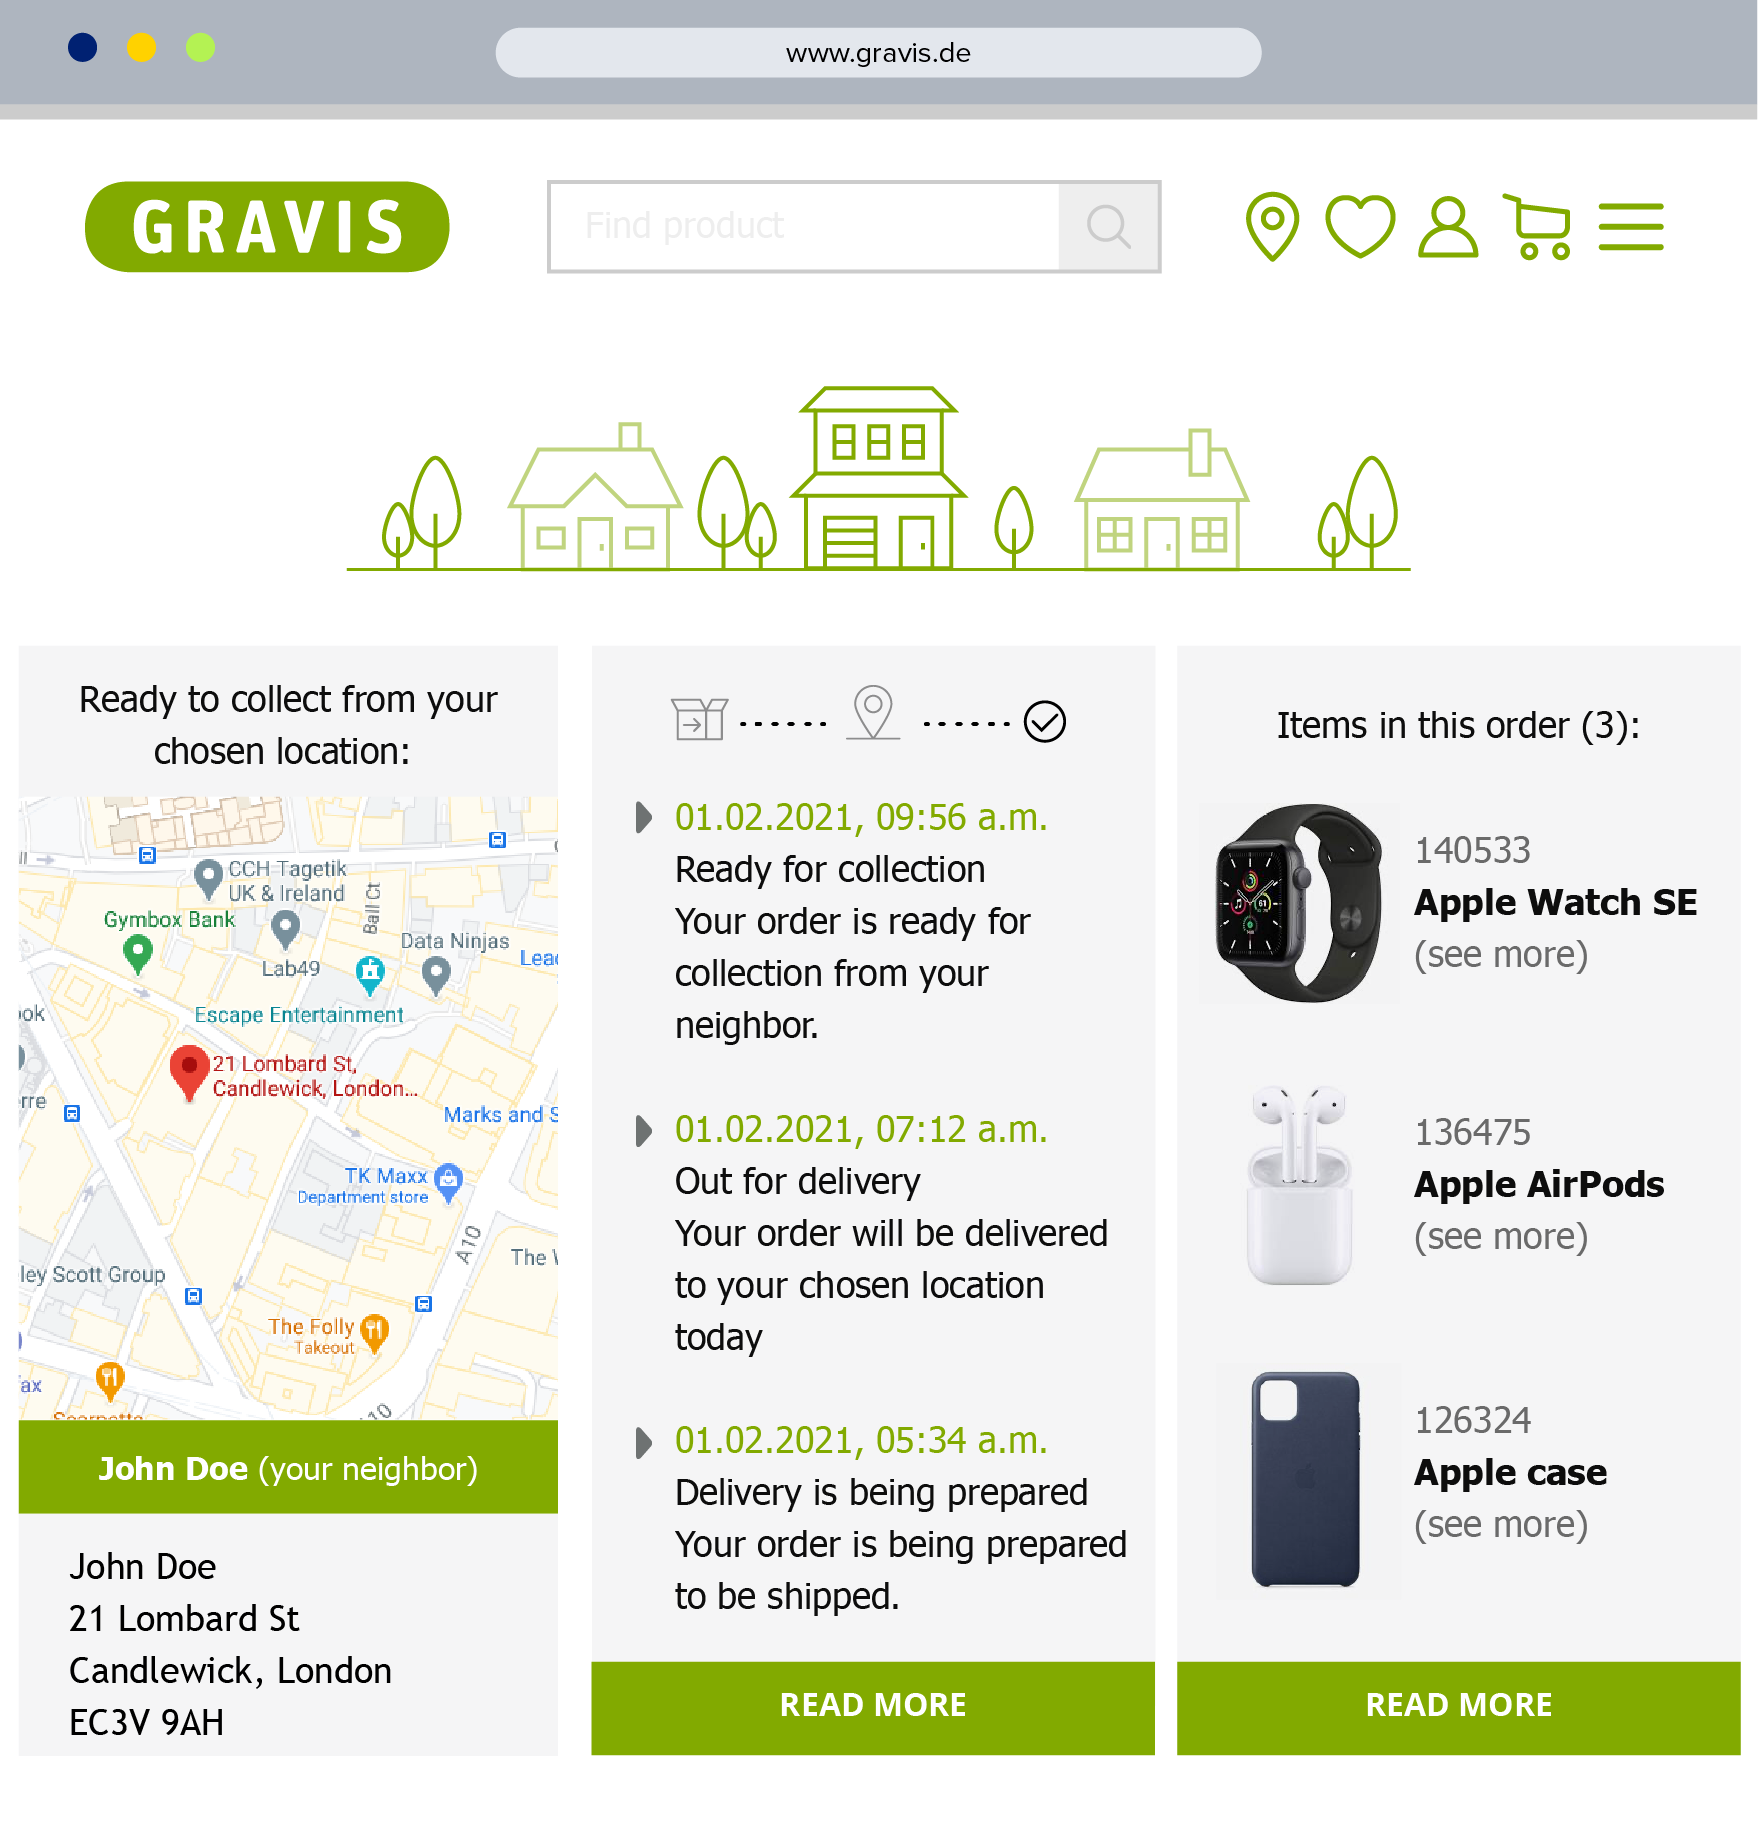 gravis apple delivery tracking platform interface with google maps